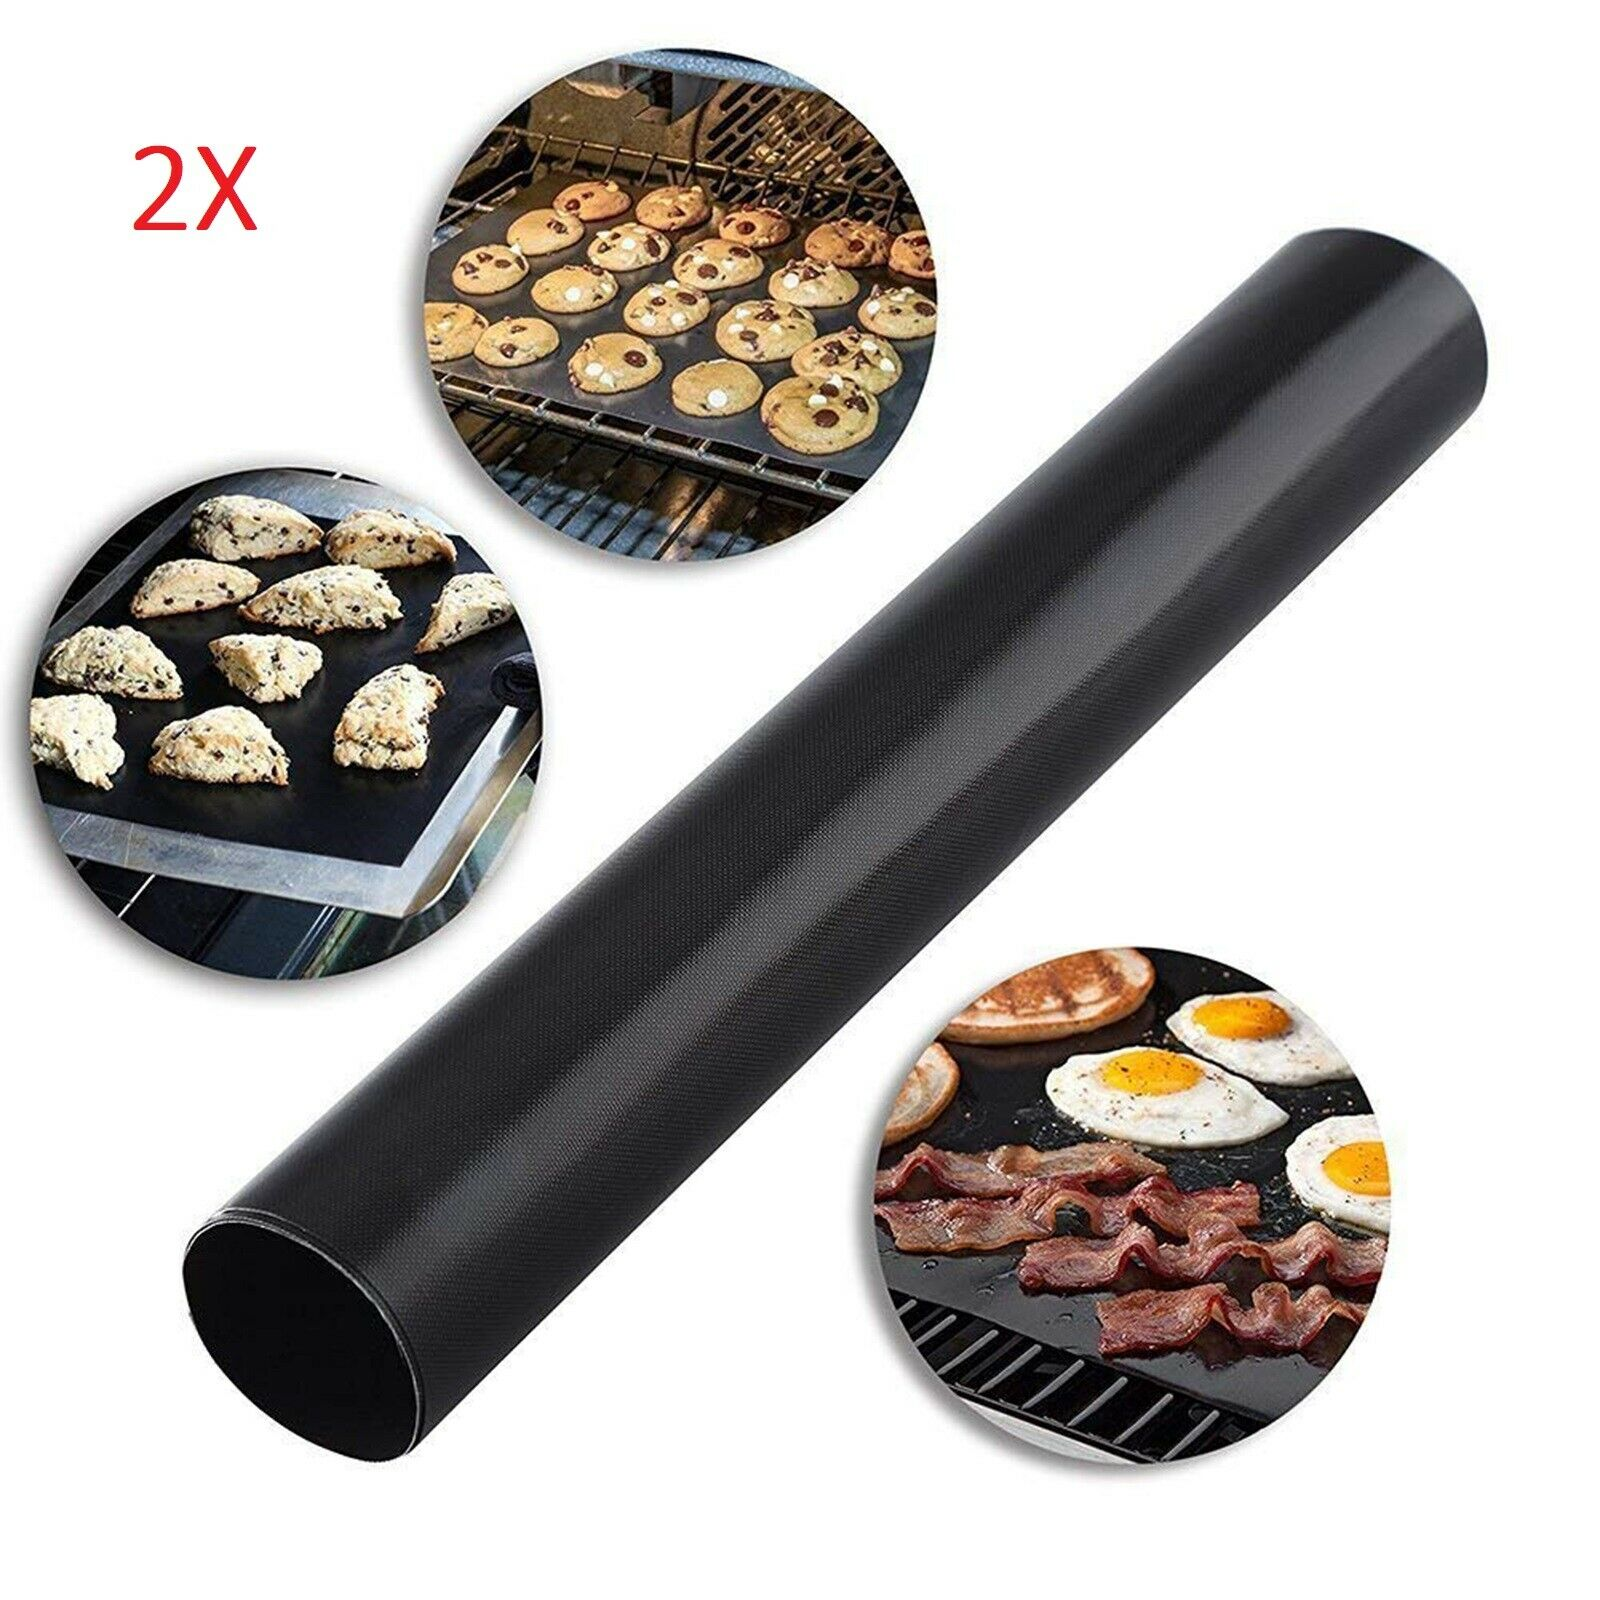 2 x BBQ Grill Oven Non-stick Hotplate Cooking Liner Reusable 33x50cm